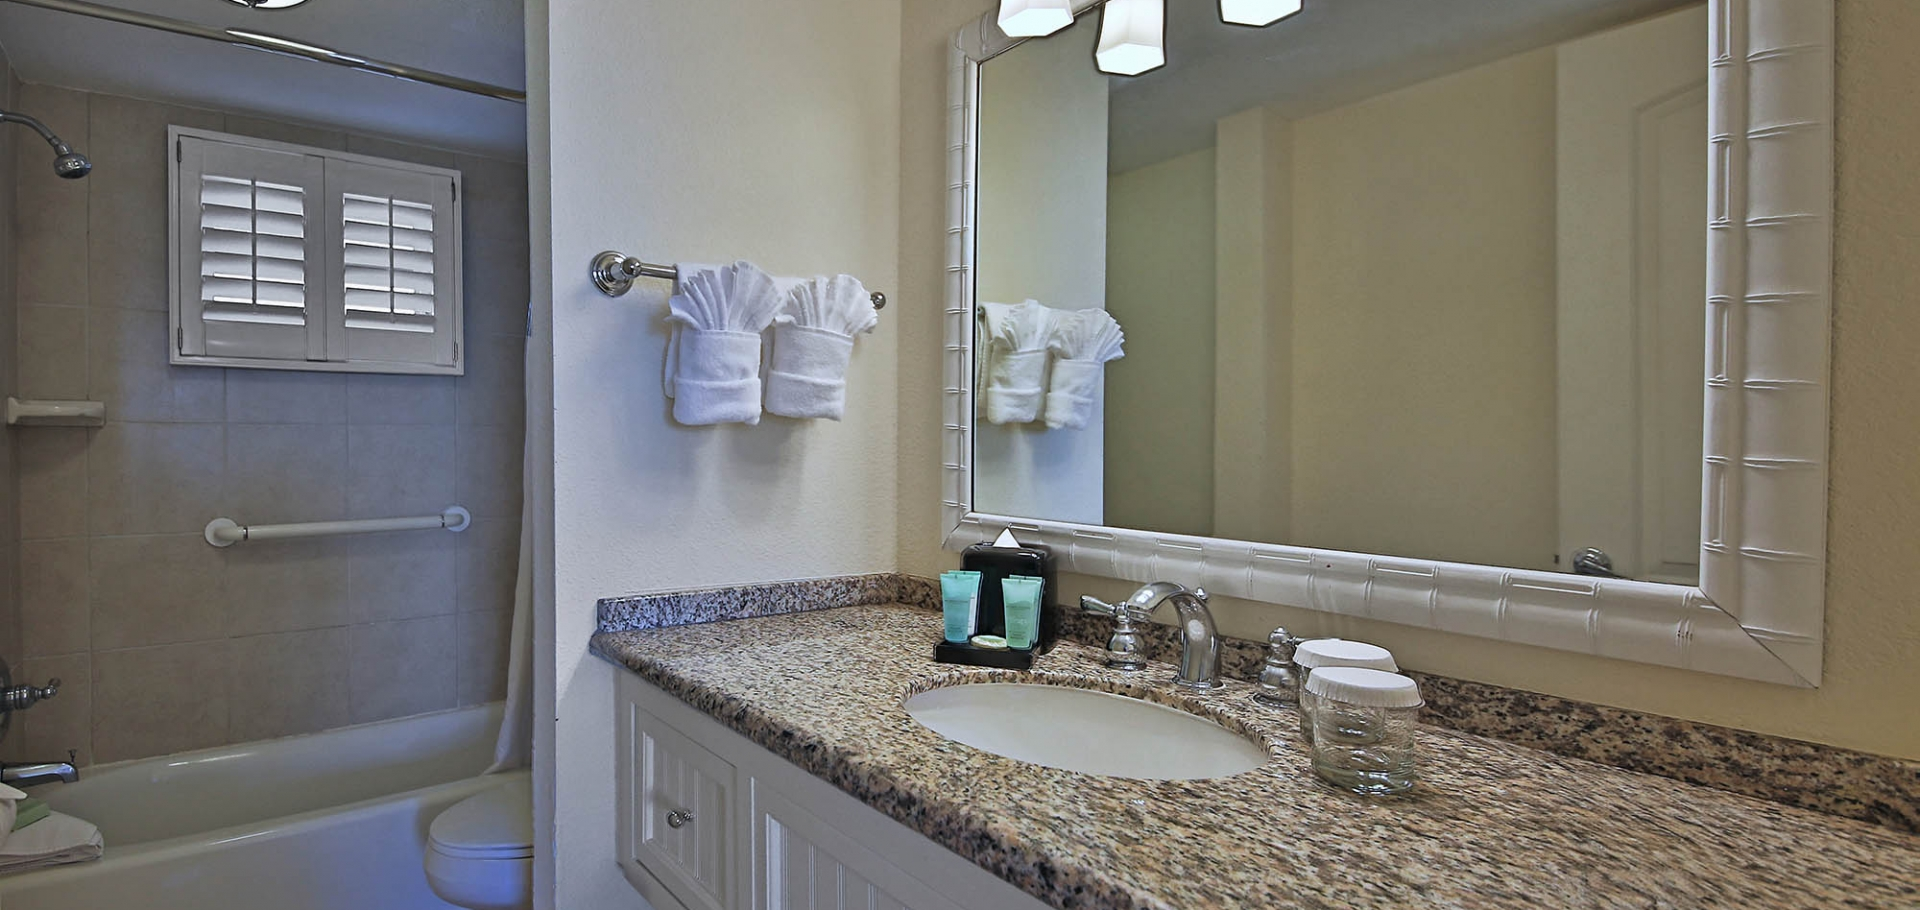 Sanibel Inn bathroom fittings